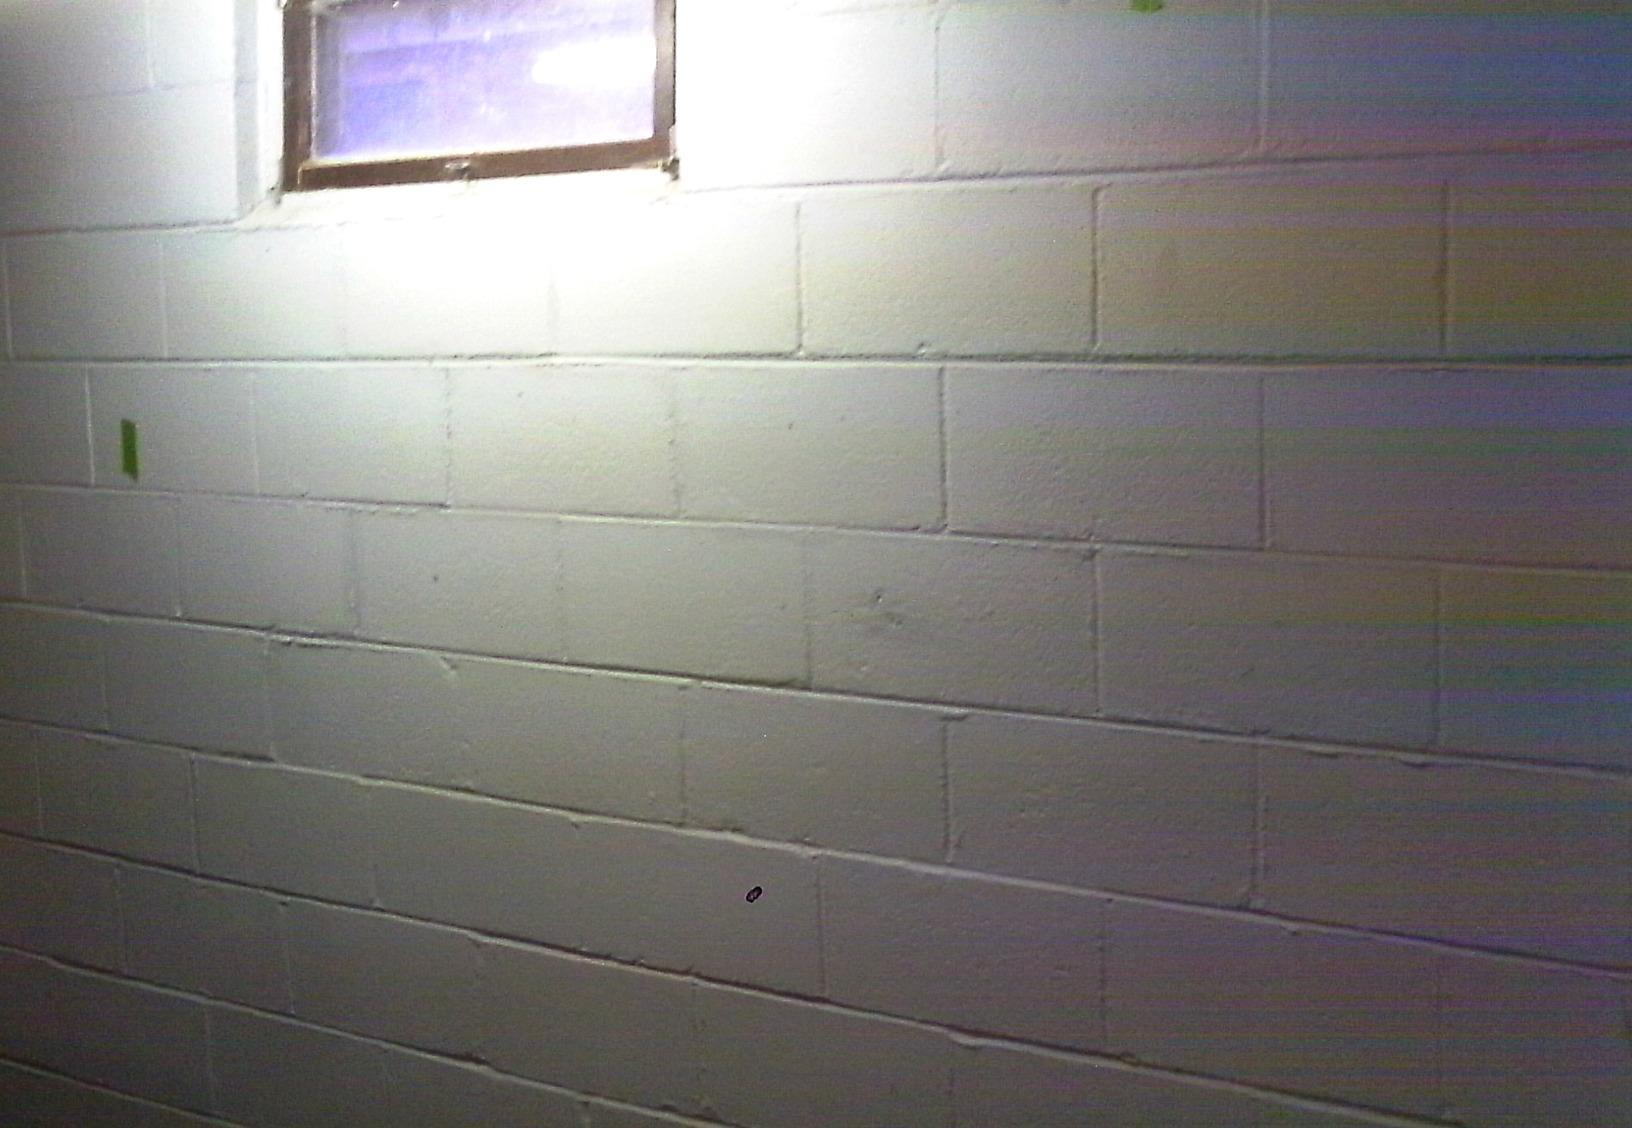 Signs of bowing walls can start small and seemingly harmless, but once there is a noticeable change in the walls, it is imperative to address the matter sooner than later.